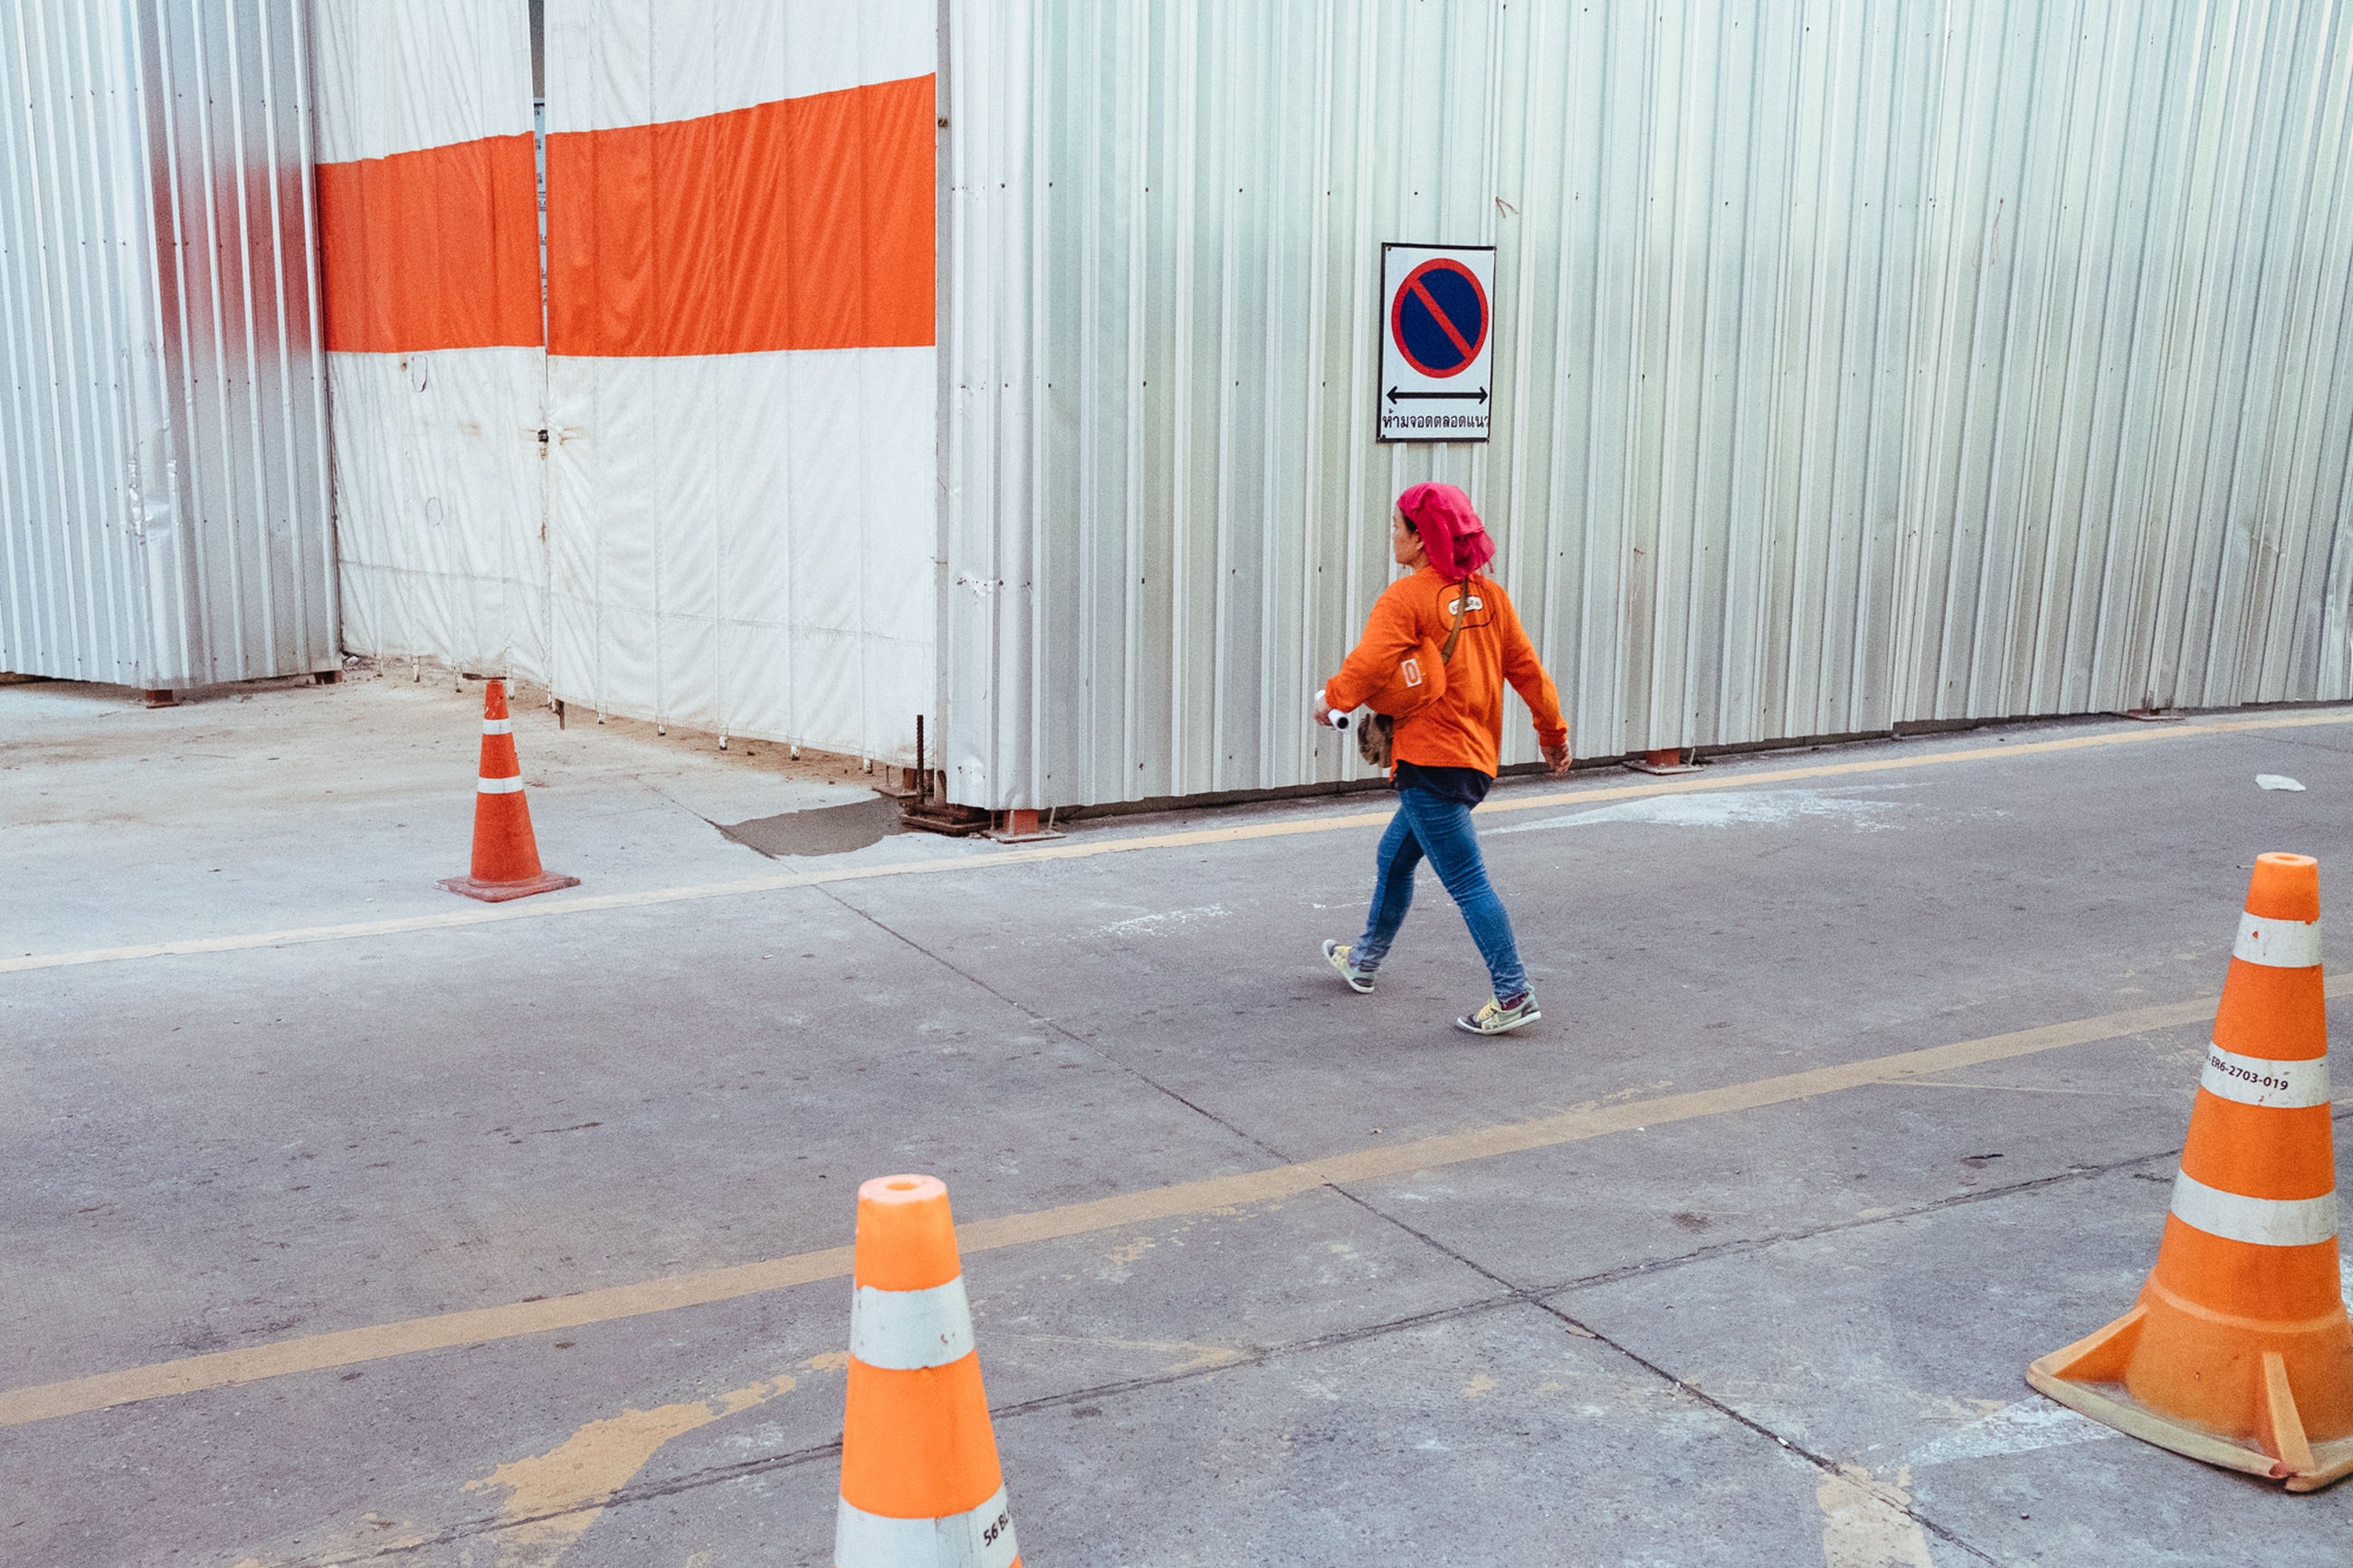 striped, outdoors, full length, asphalt, children only, road, day, real people, one person, flag, people, protective workwear